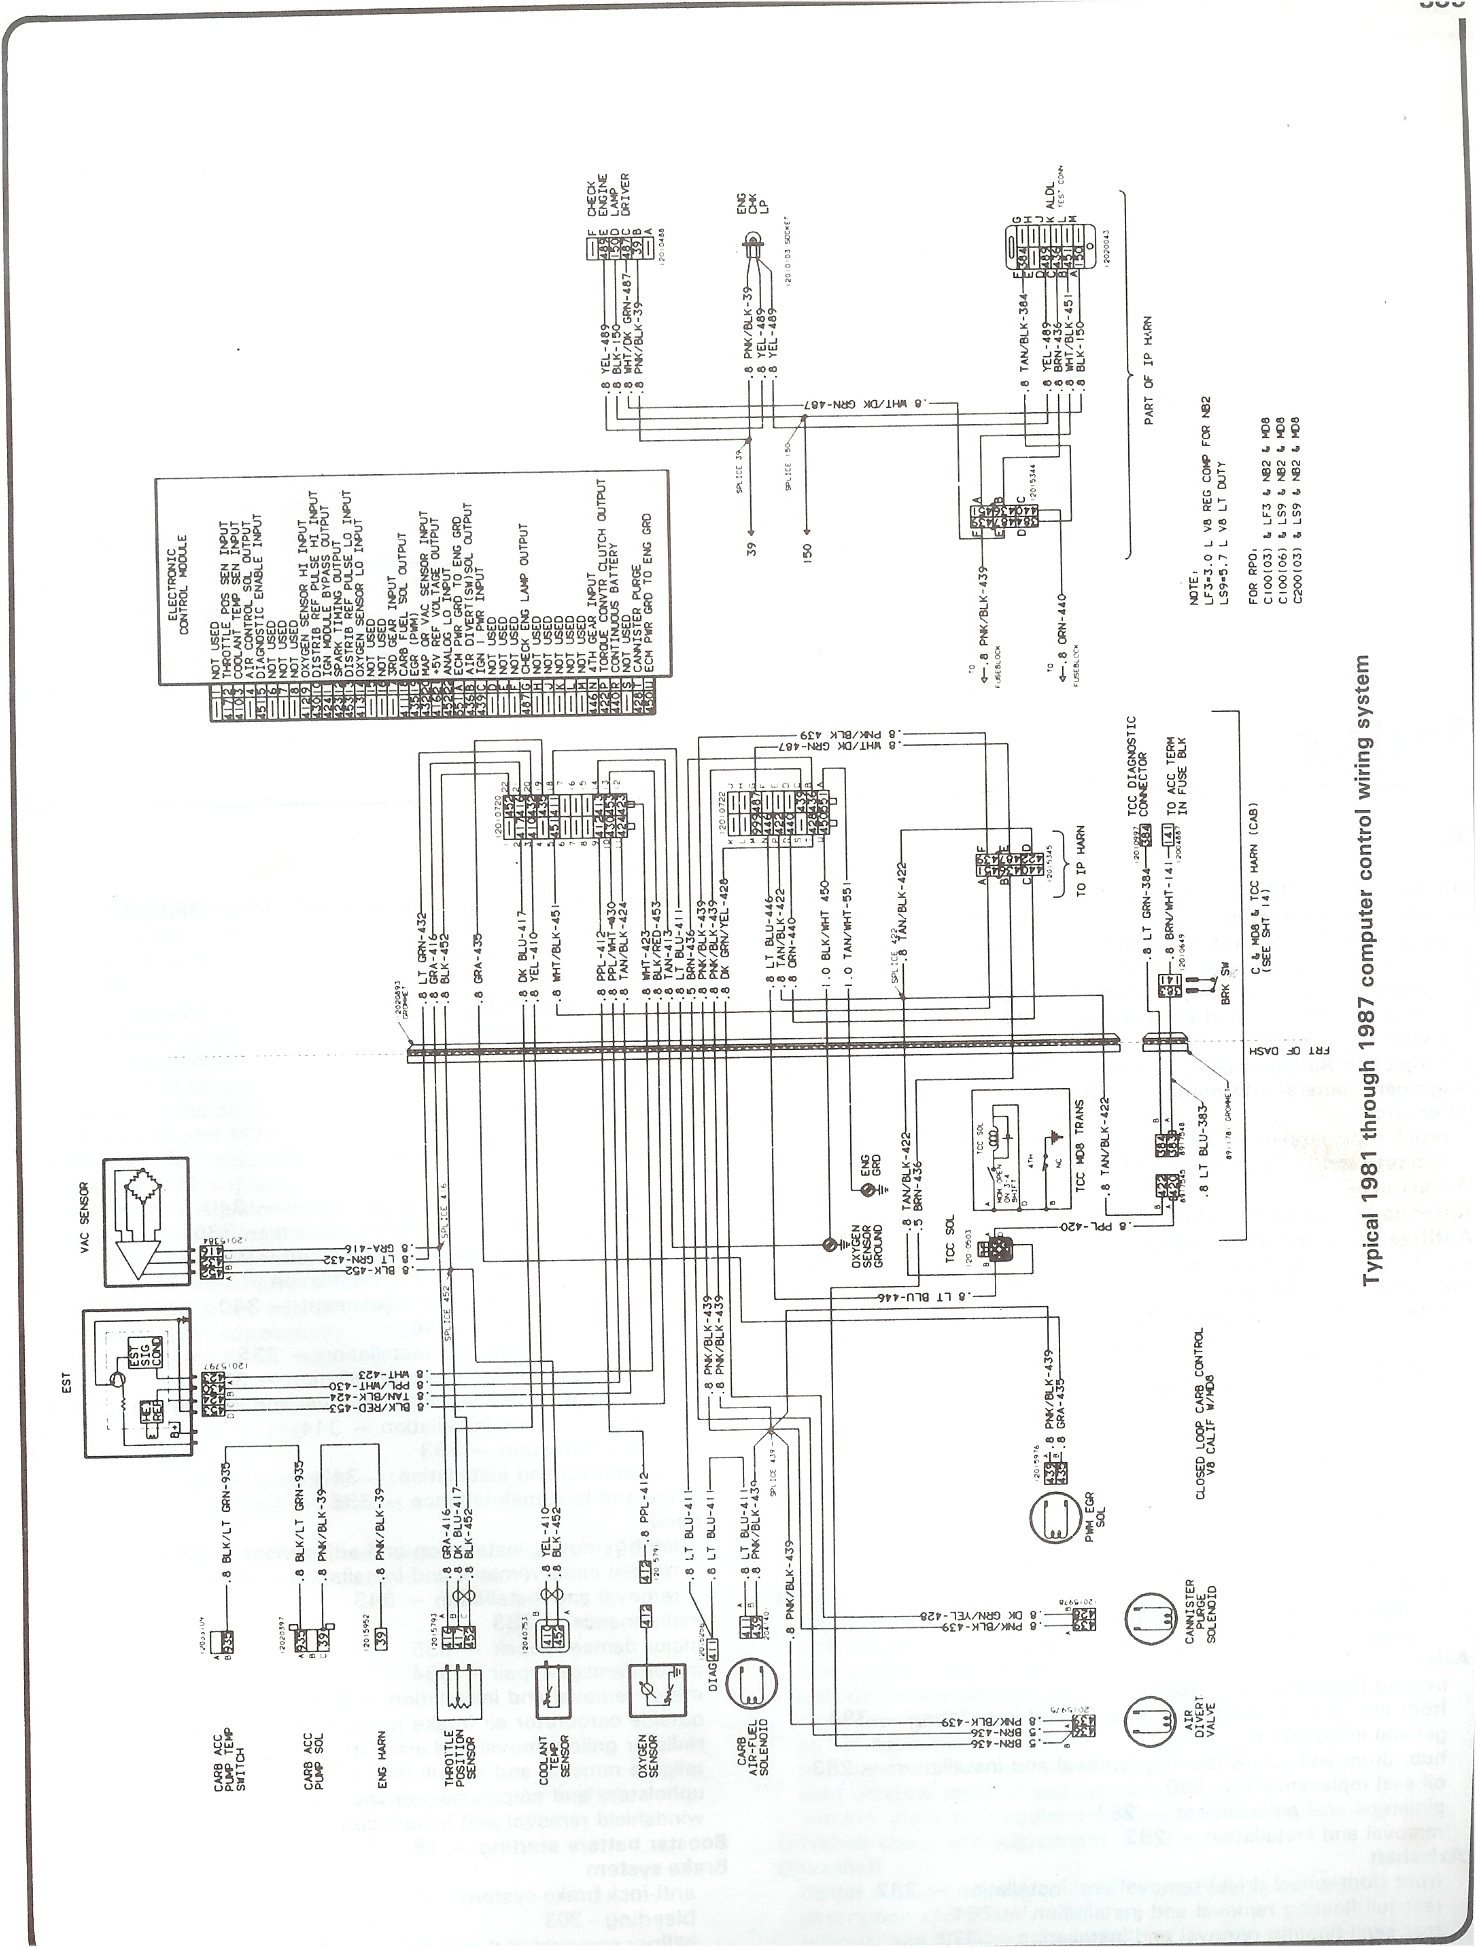 Pontiac 3 4 Engine Wiring Diagram